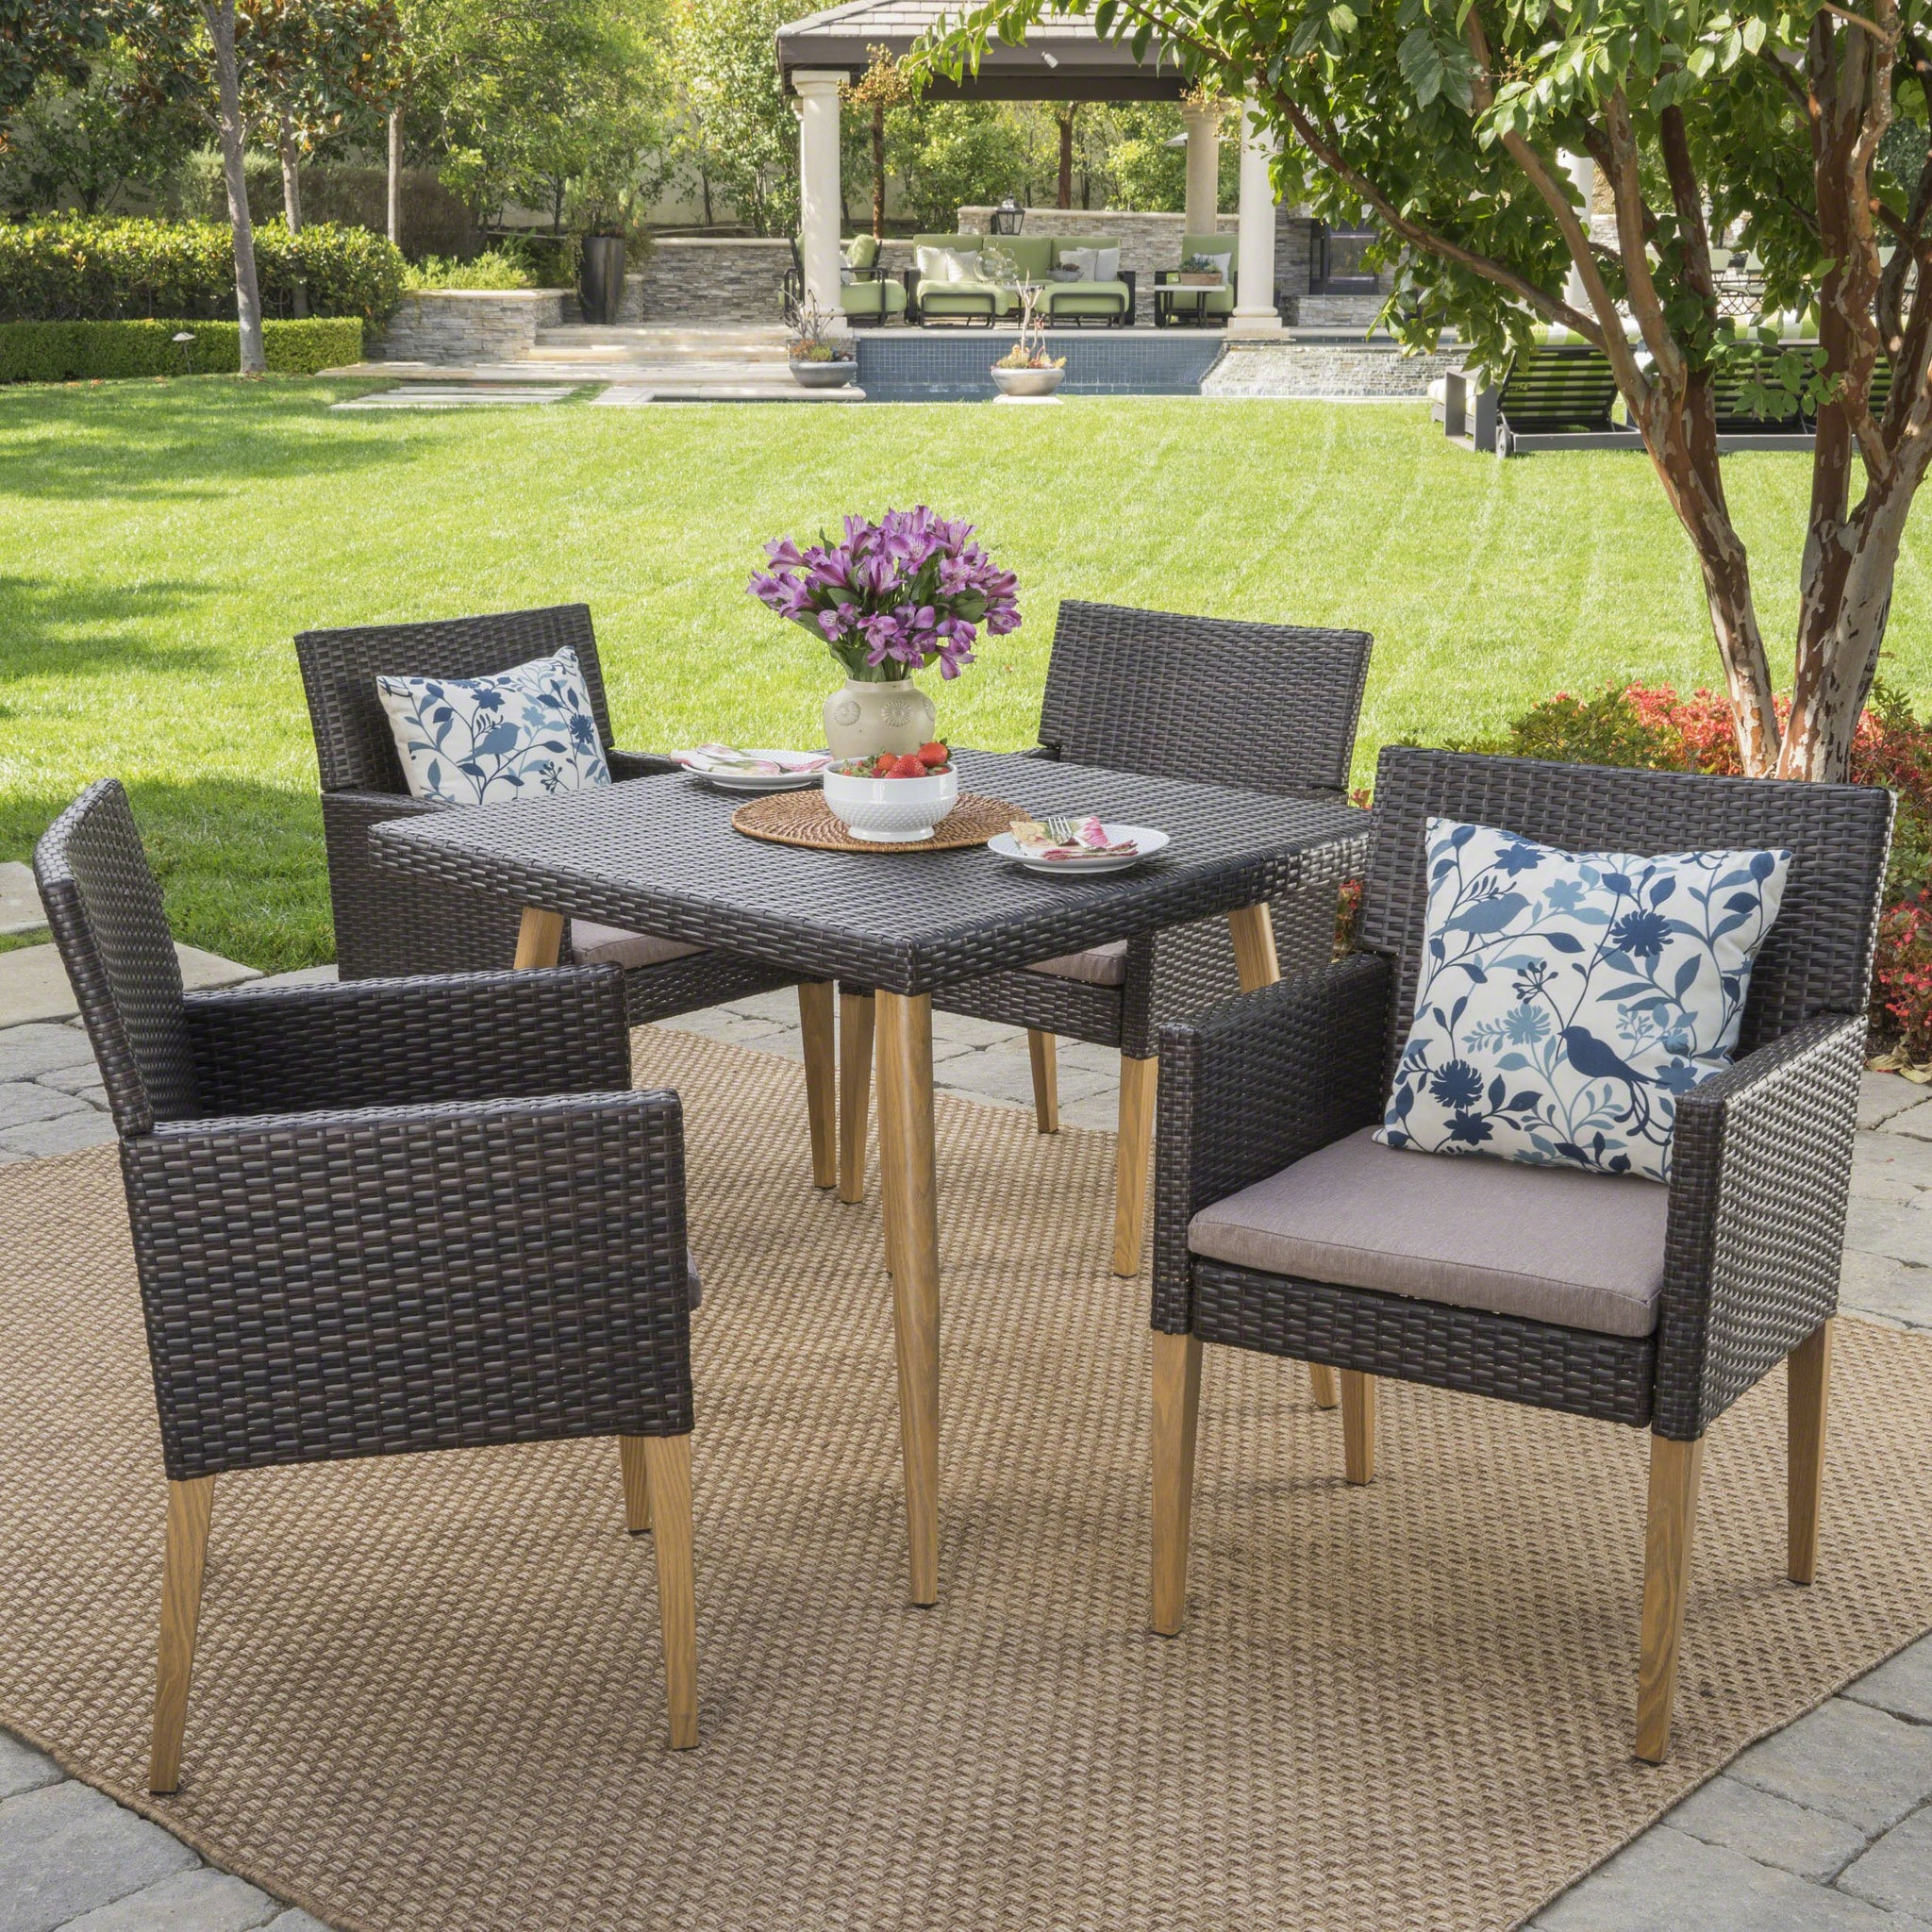 Dree Outdoor 5 Piece Wicker Square Dining Set With Water Resistant Cushions And Wood Finished Metal Legs